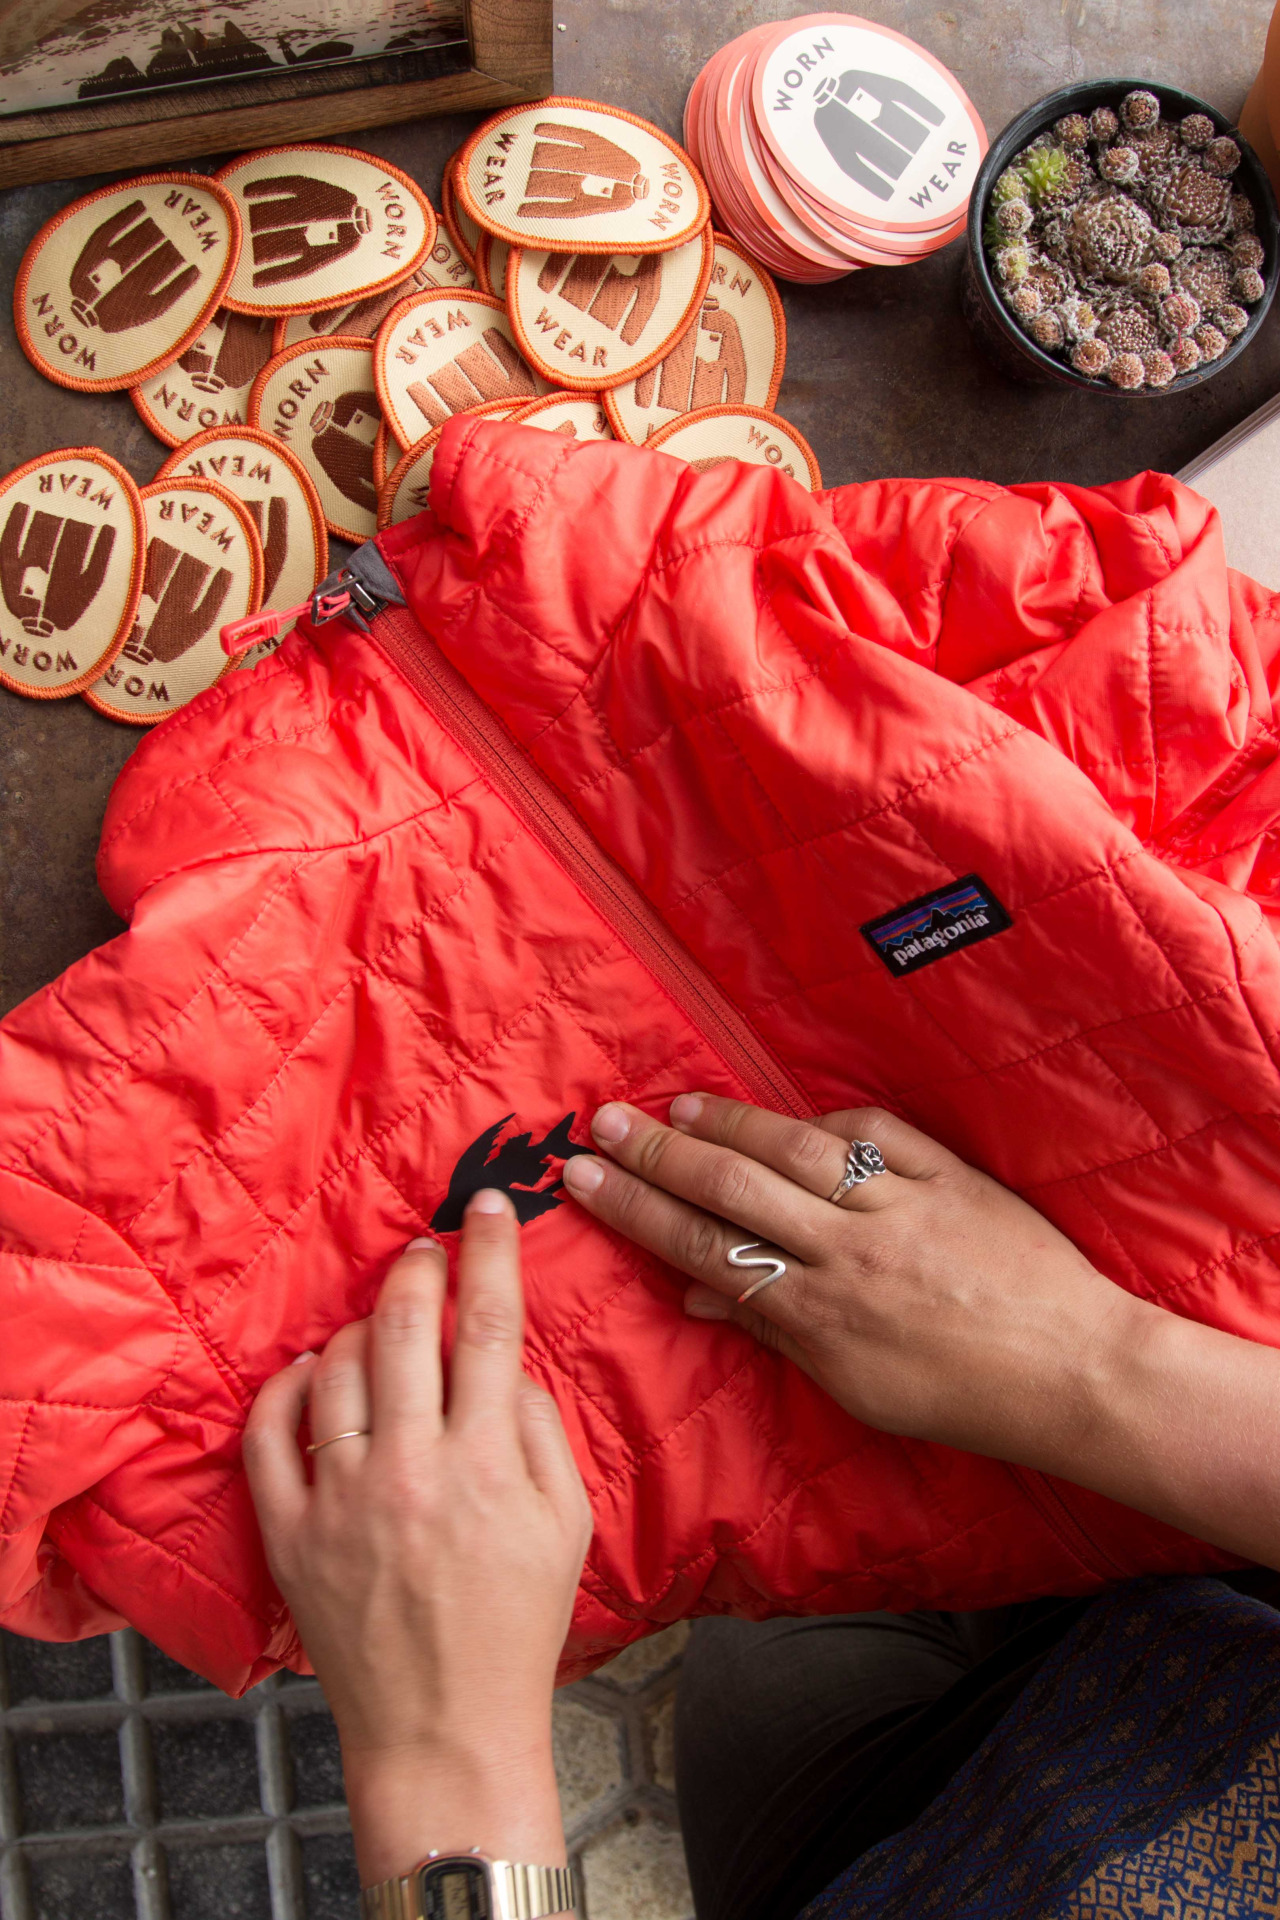 Patagonia wins award on circular economy and launches e-commerce Worn Wear platform